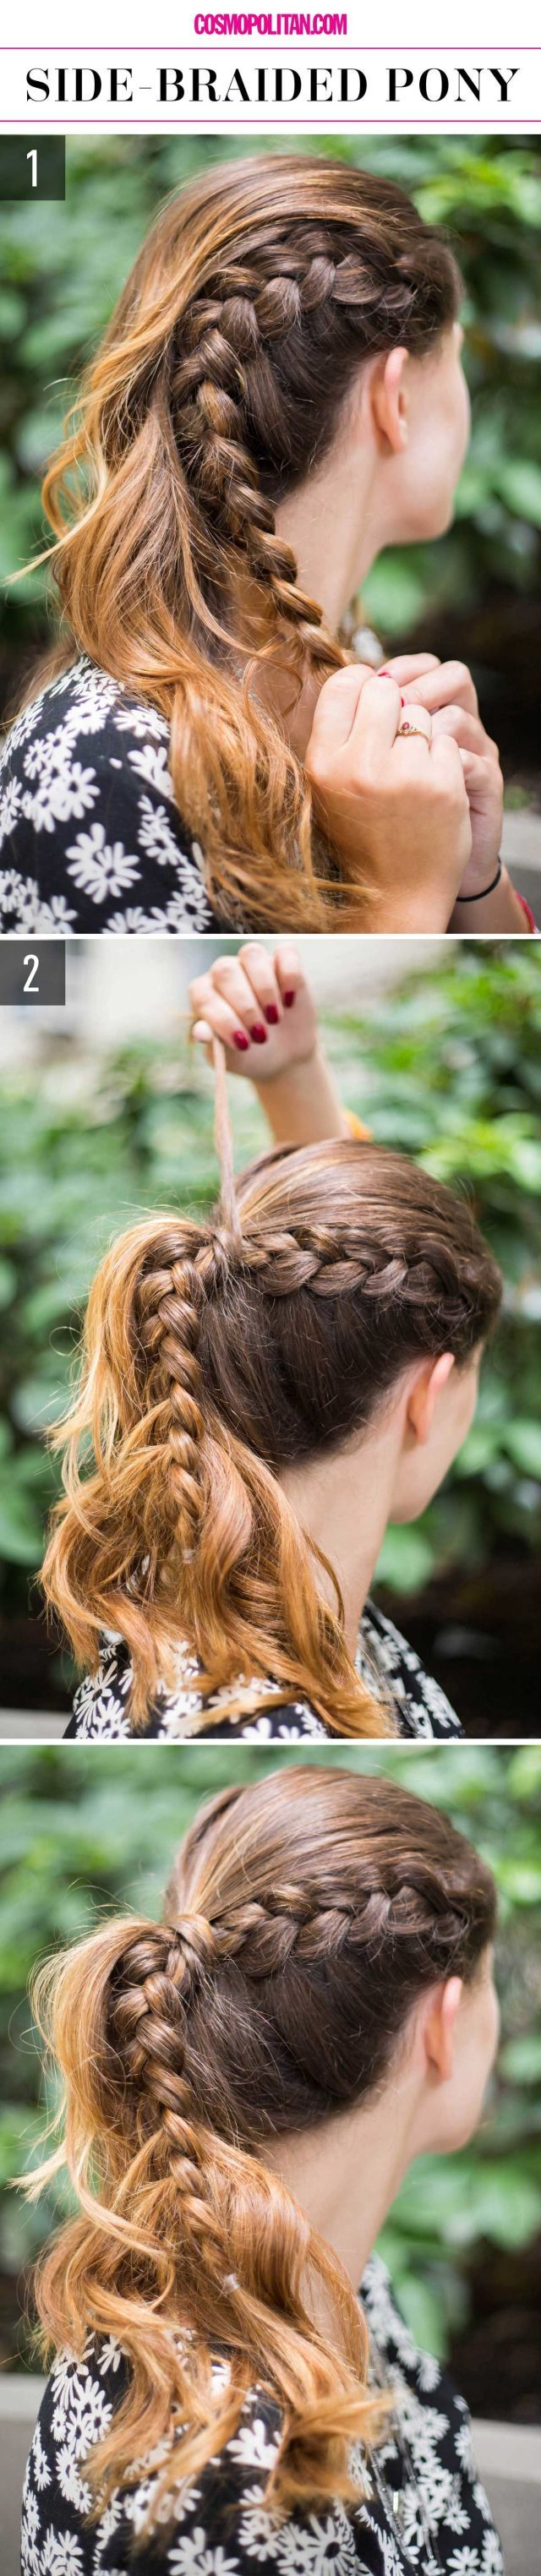 How to upgrade your ponytail with a side braid.